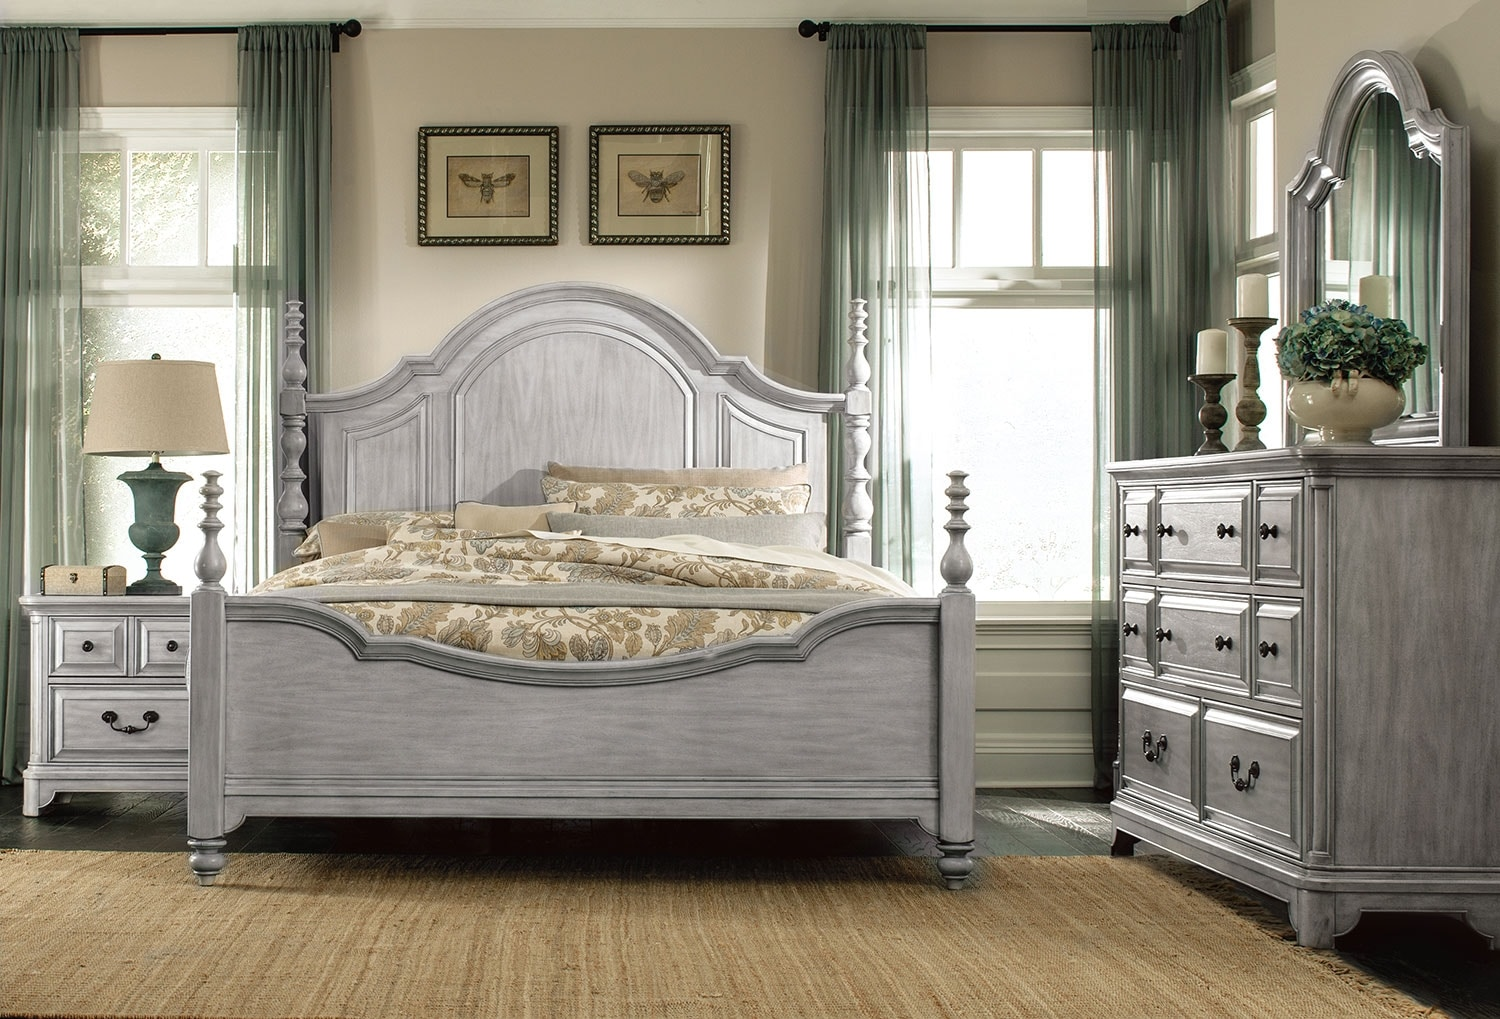 Weathered Gray Bedroom Furniture : Tressa piece king bedroom set weathered grey leon s